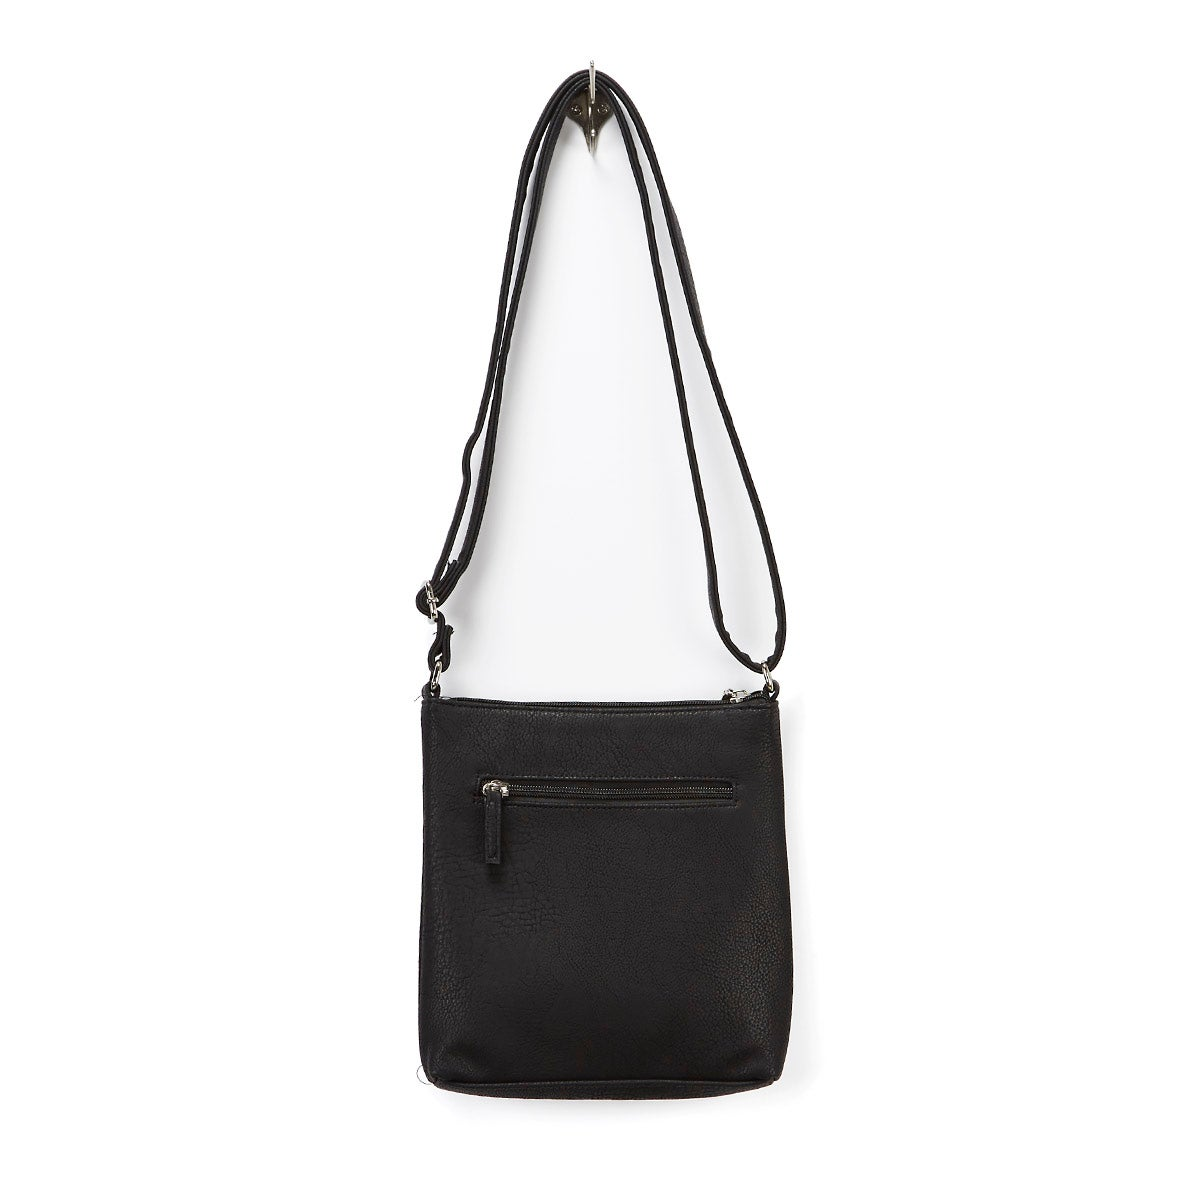 Lds Roots73 blk north south cross body